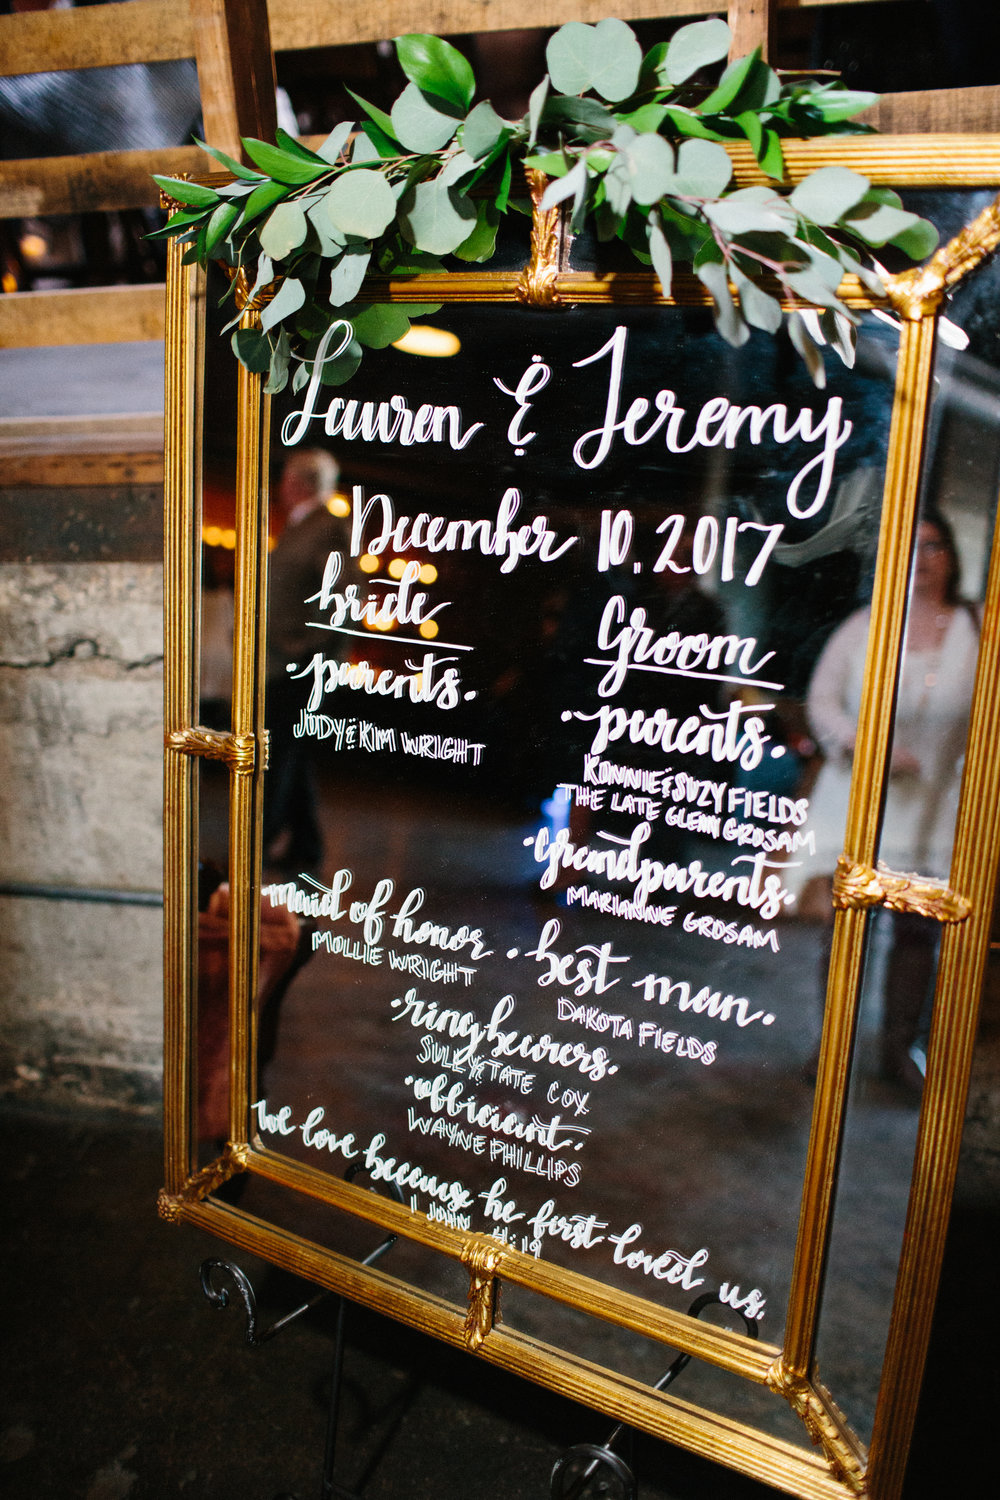 Lauren_Jeremy_Standard_Wedding_Knoxville_Abigail_Malone_Photography_FIlm-442.jpg